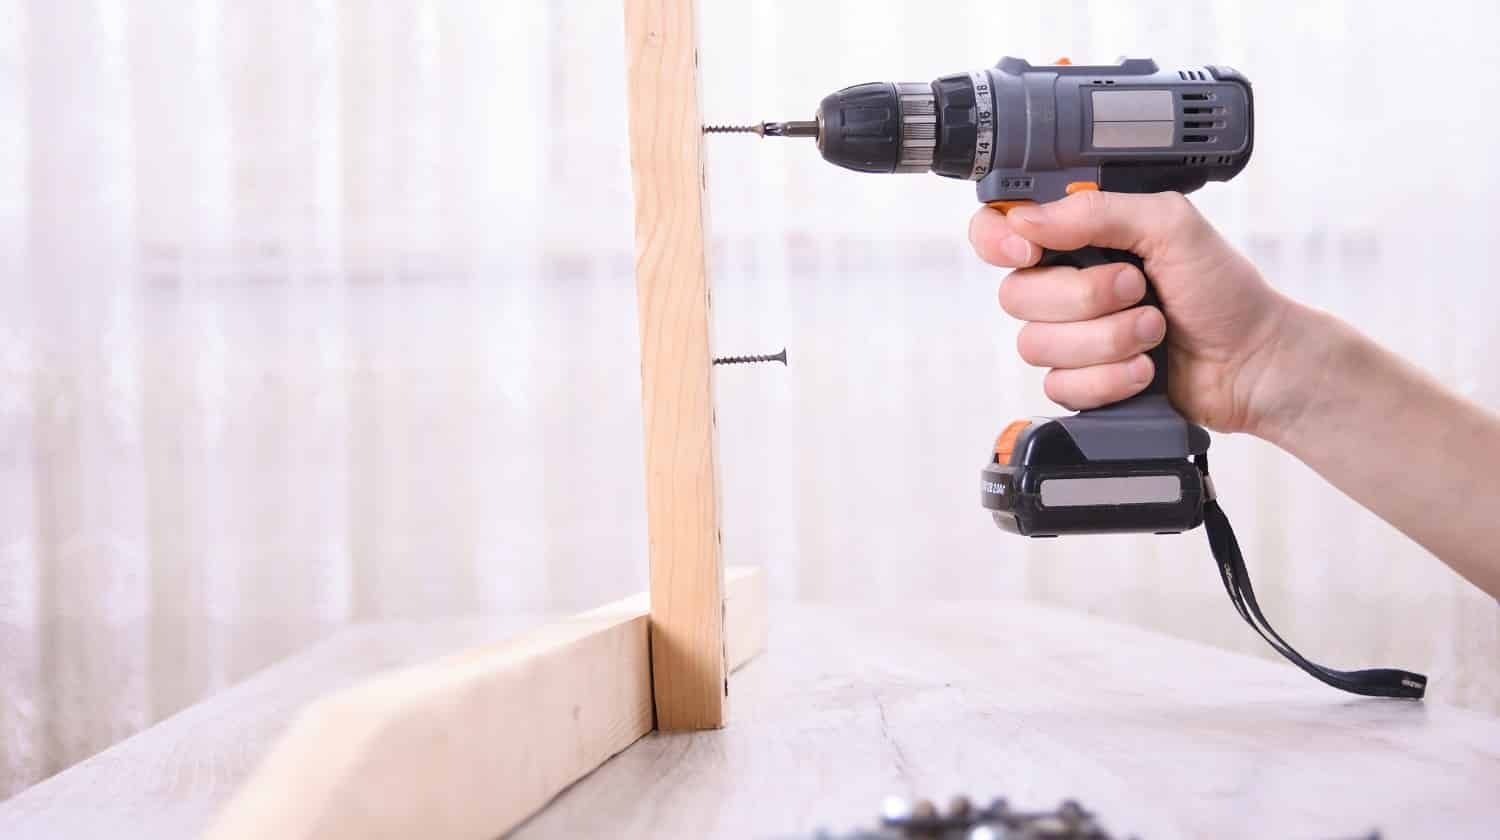 Man is working with furniture assembly using electric screwdriver in new house installation - technician onsite work using hand tools a concept